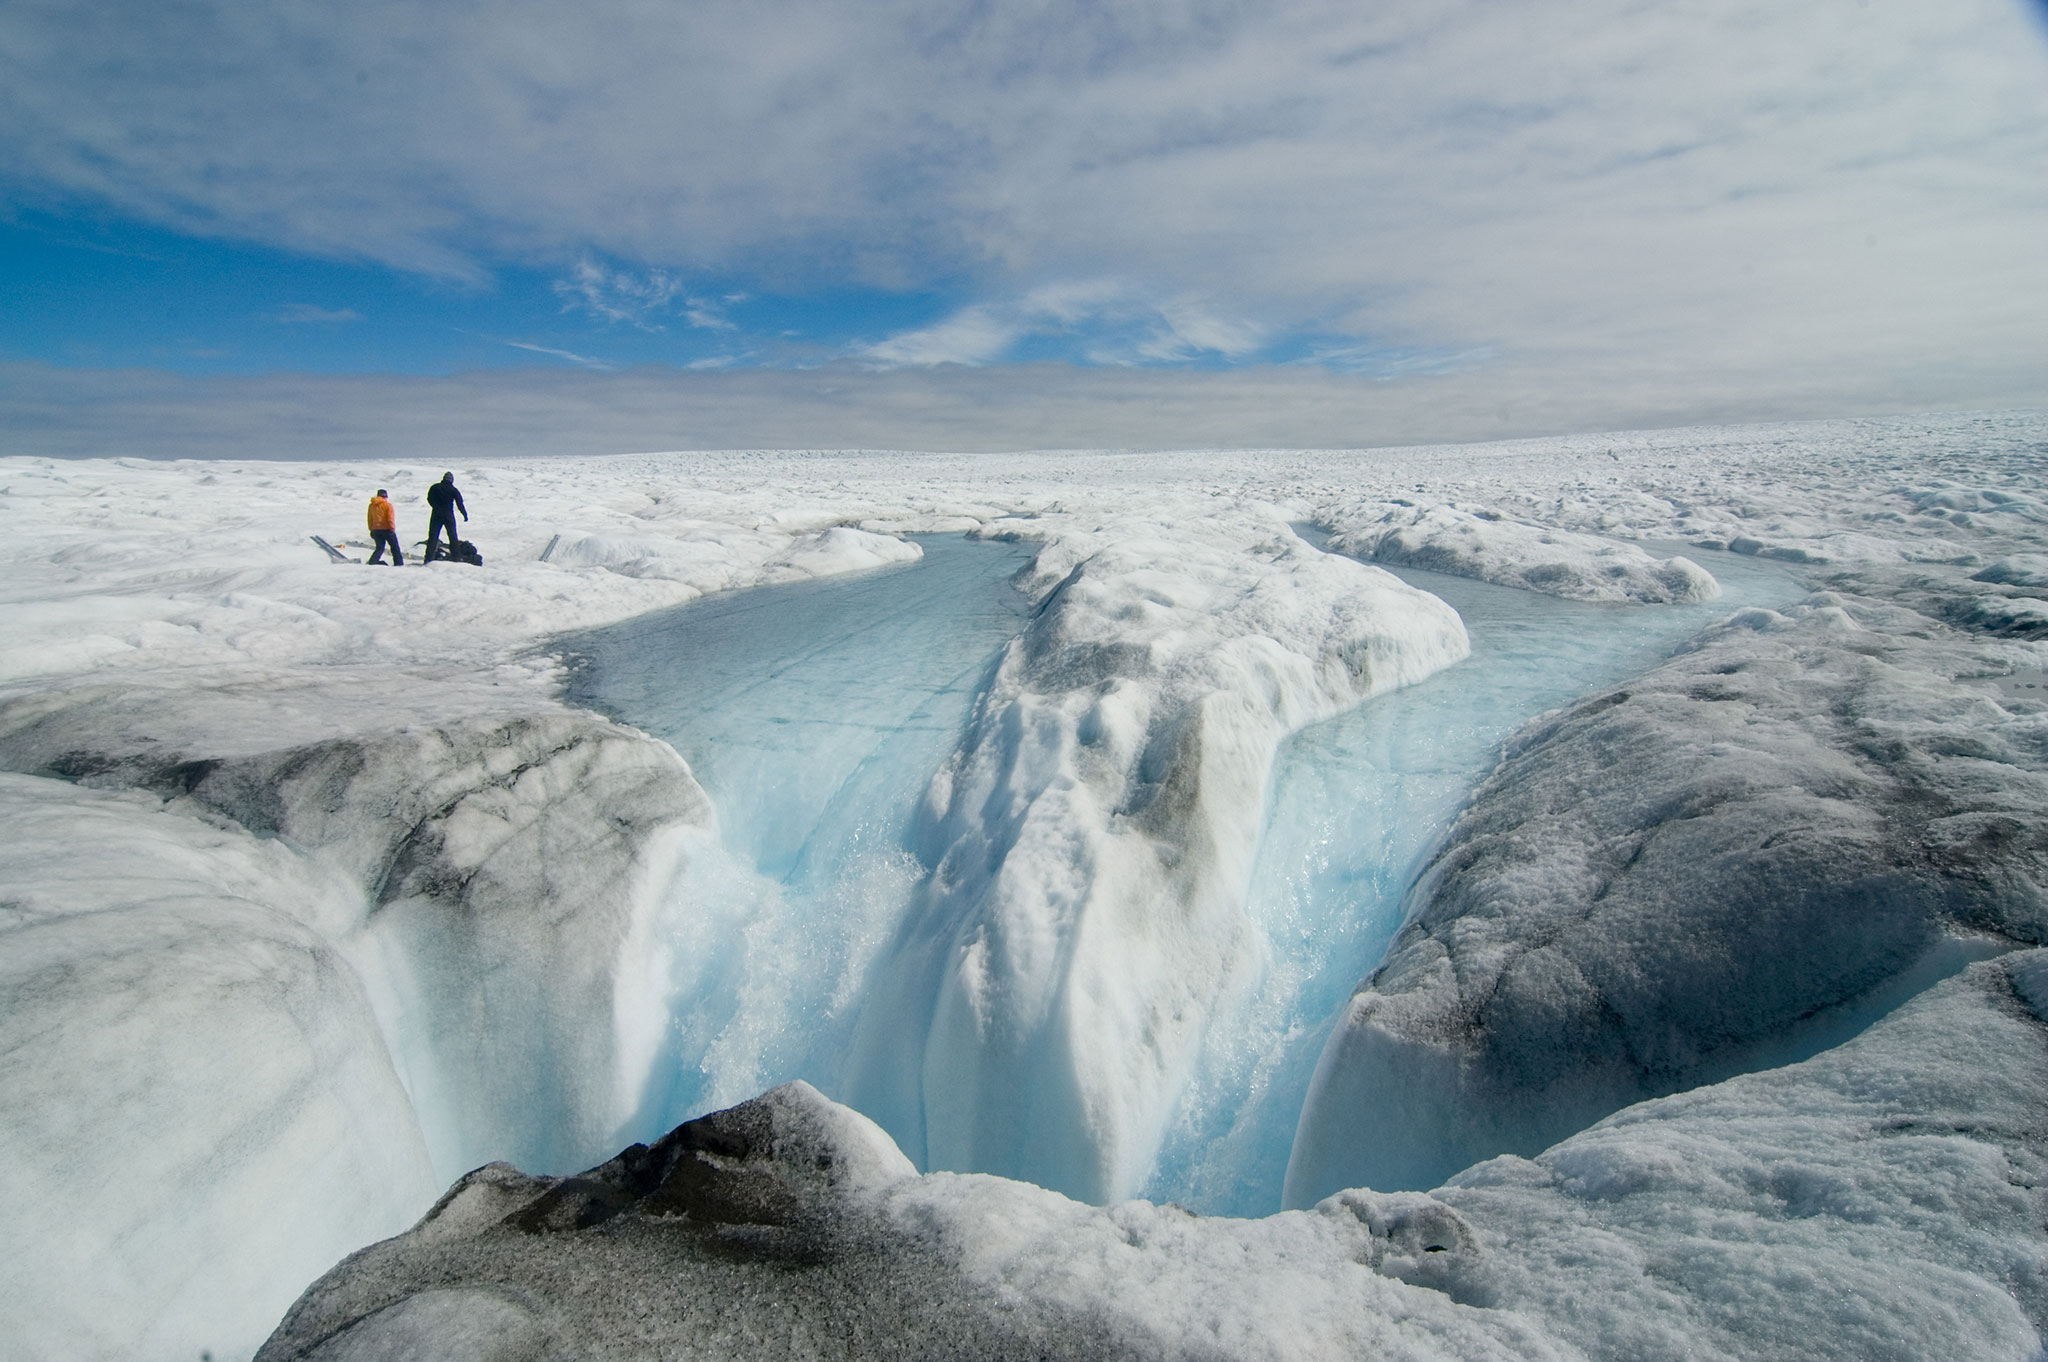 Greenland Drastically Lost 2 Billion Tons Of Ice Melted In Just A Day